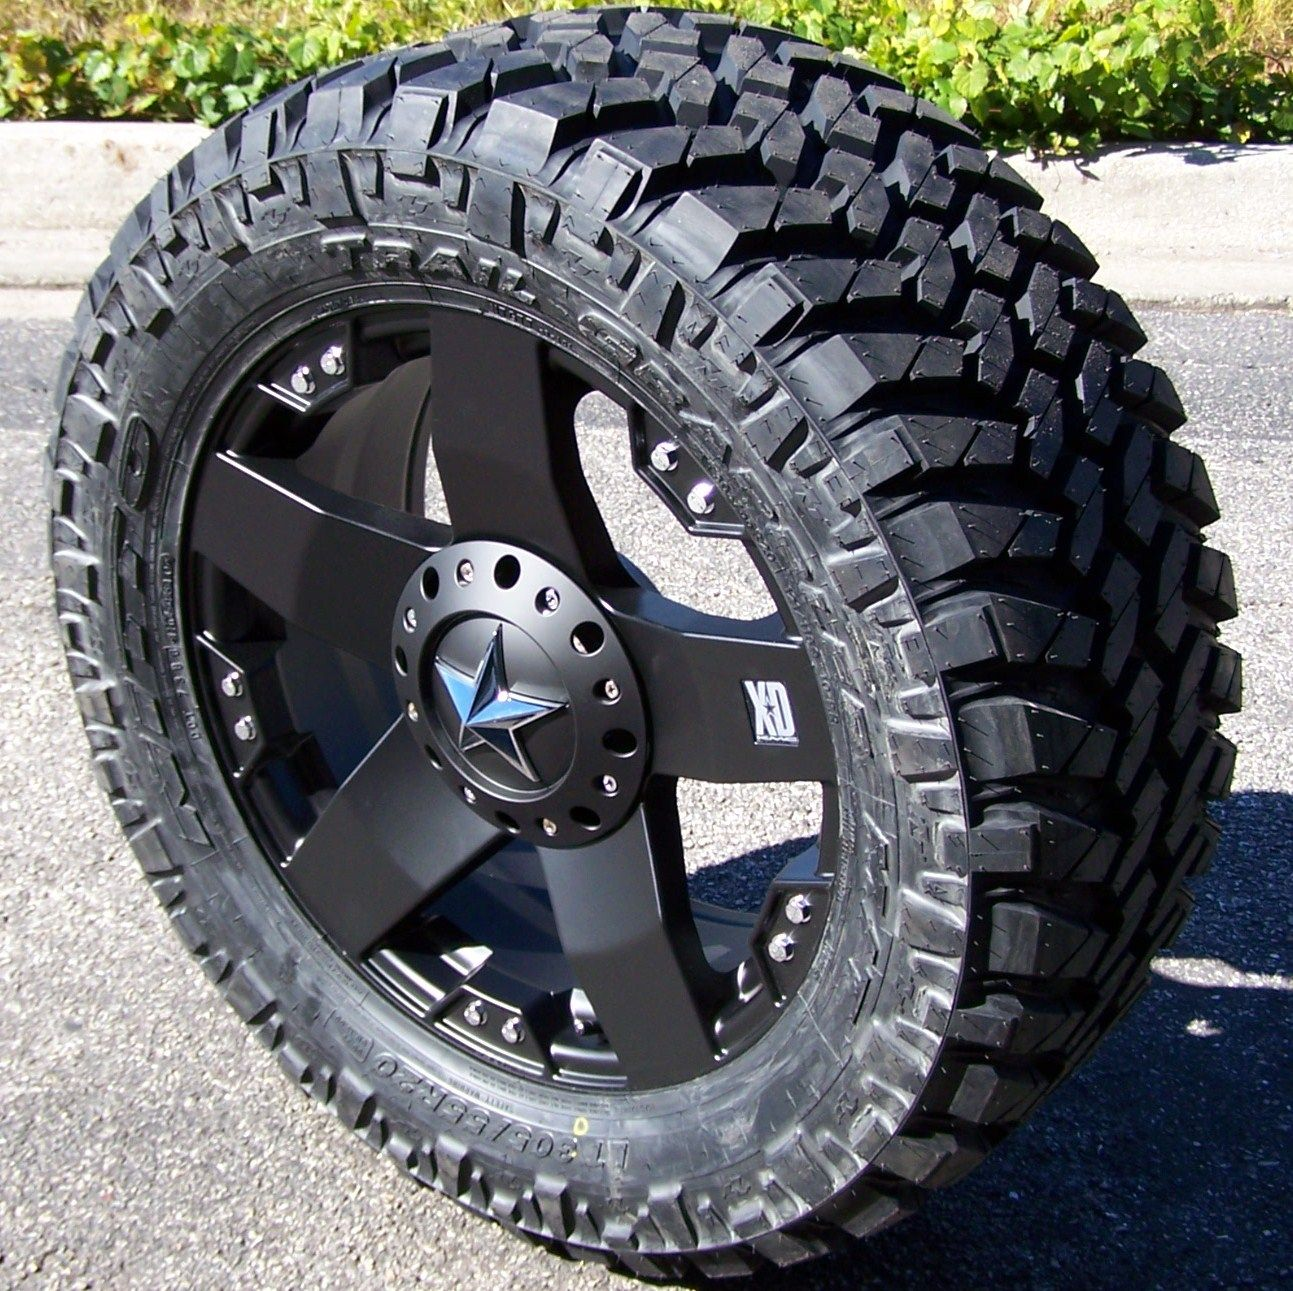 20 Black Xd Rockstar Wheels 35 Nitto Trail Grappler Ford F150 Chevy Gmc 1500 Ebay Wheels And Tires Truck Rims Tires For Sale